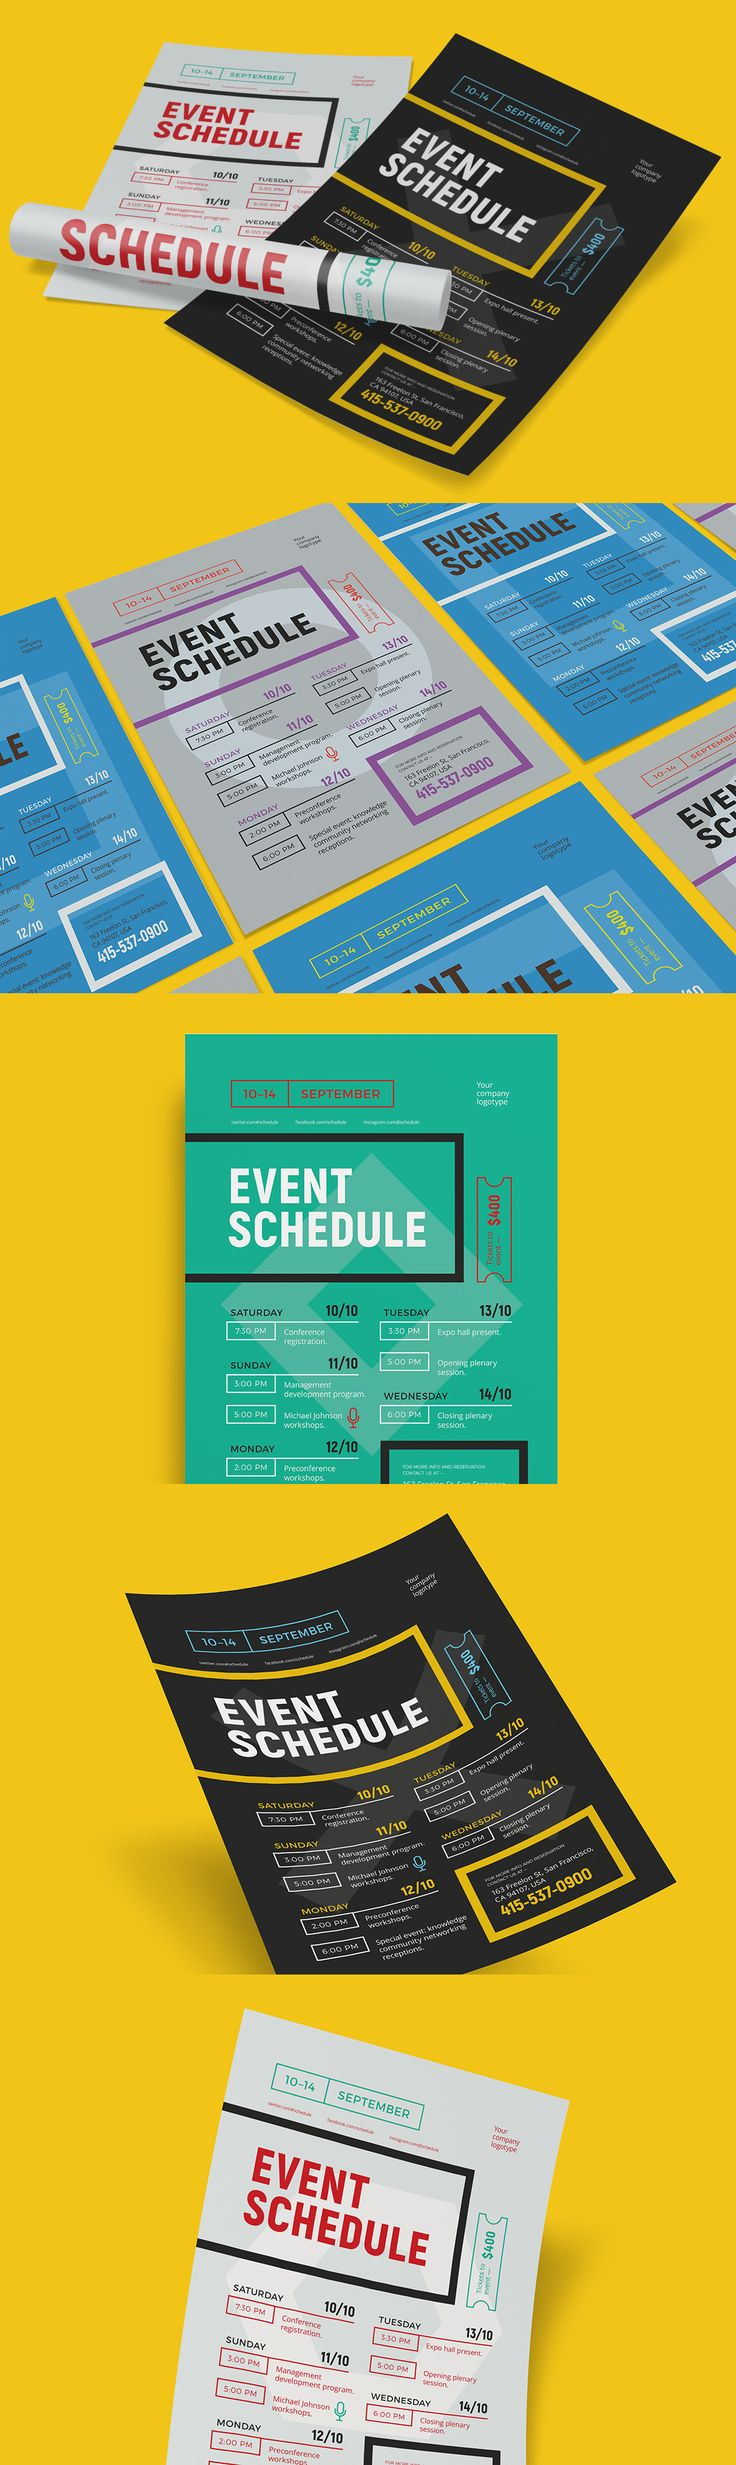 Poster design event - Best 25 Design Conference Ideas On Pinterest Conference Poster Corporate Branding And Event Listener